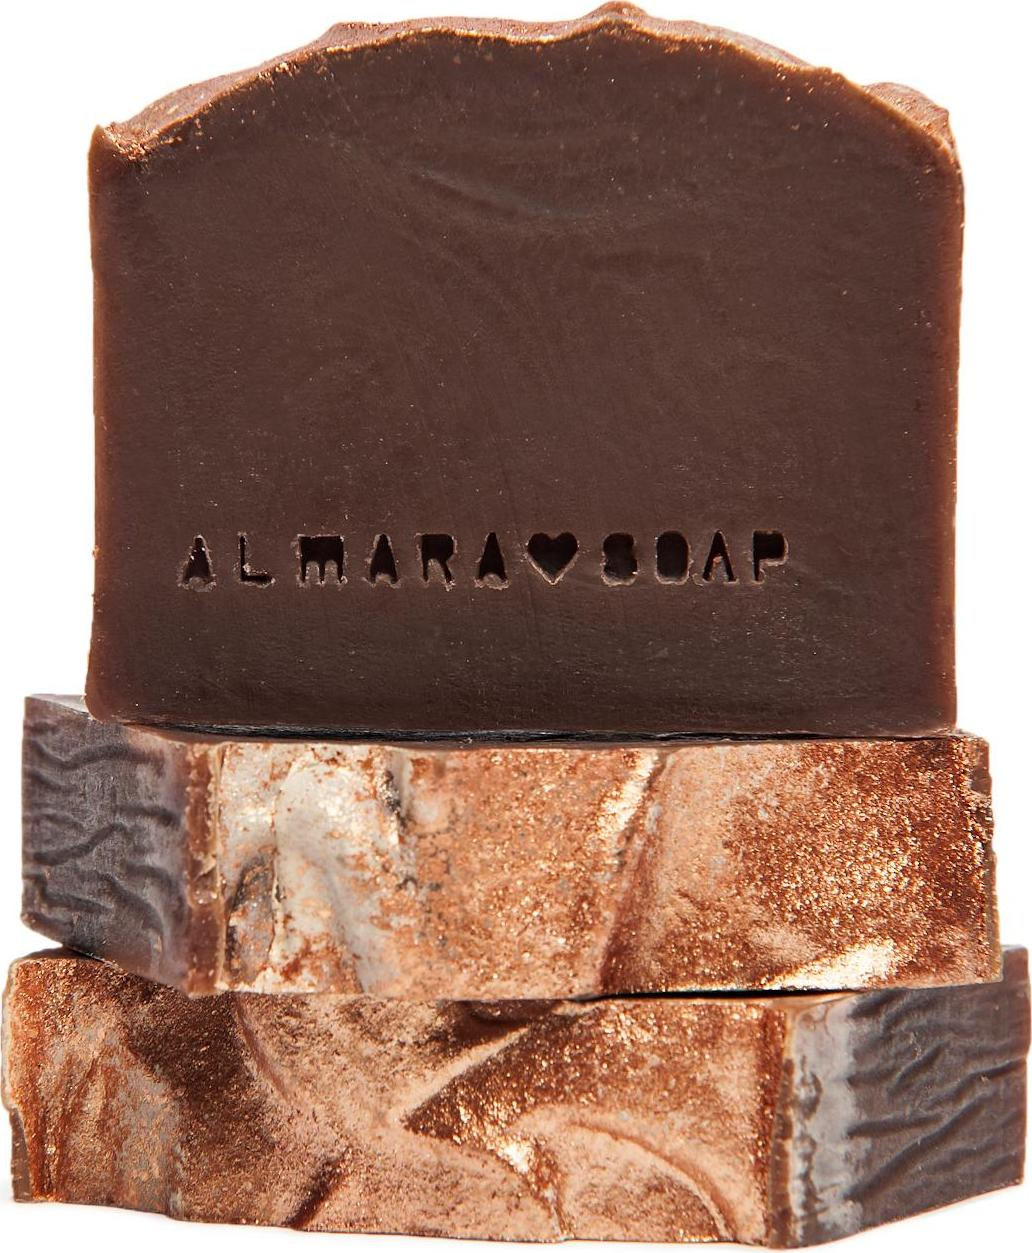 Almara Soap Mýdlo Gold Chocolate 100 g - 5 g